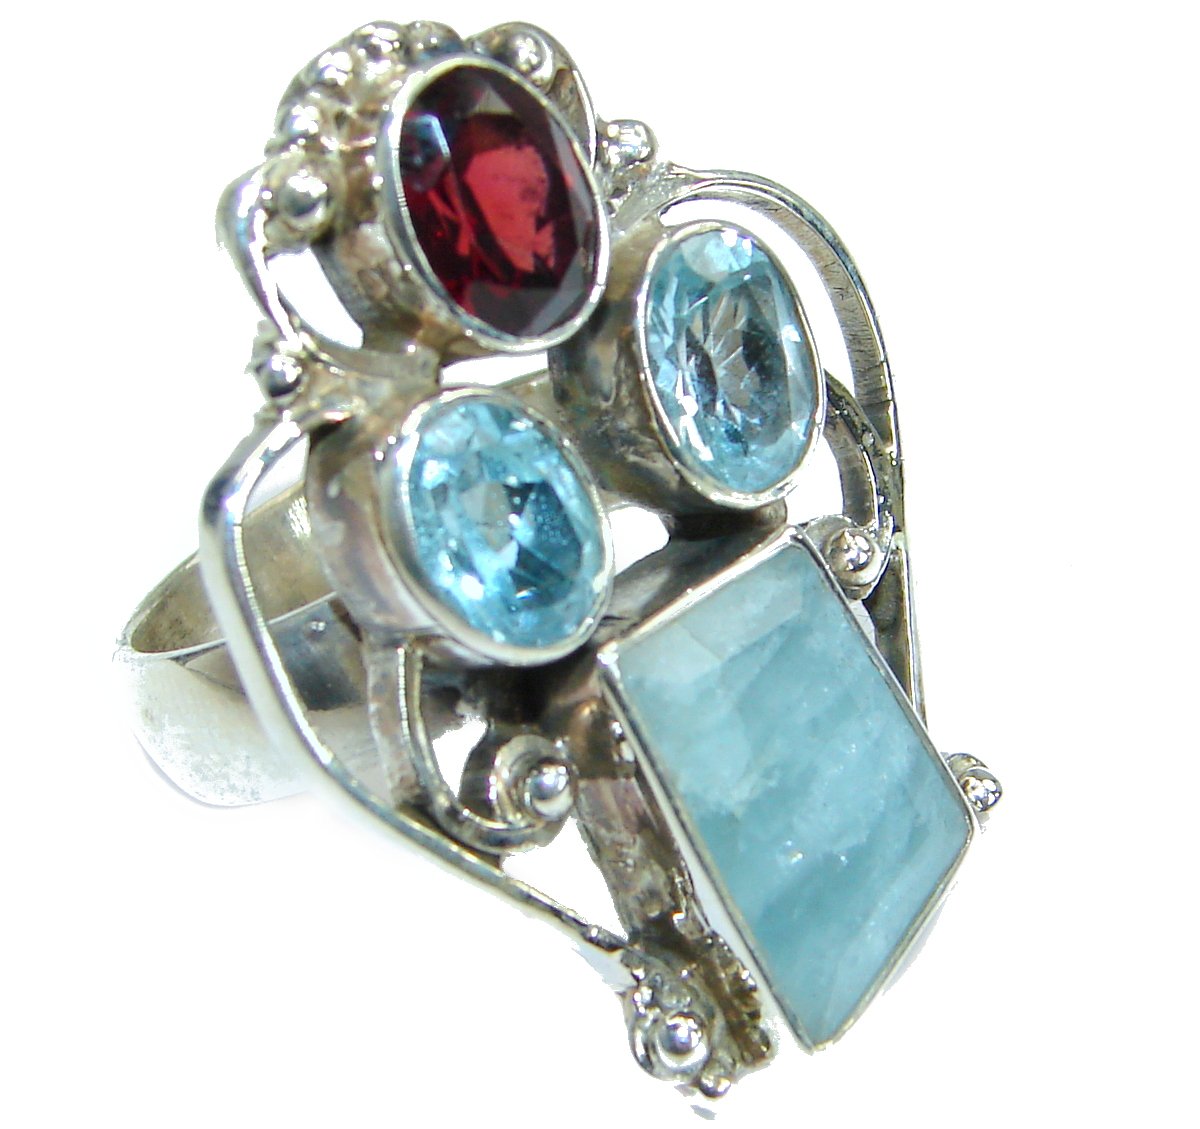 Passiom Fruit Natural Aquamarine .925 Sterling Silver Ring s. 6 1/2 129575